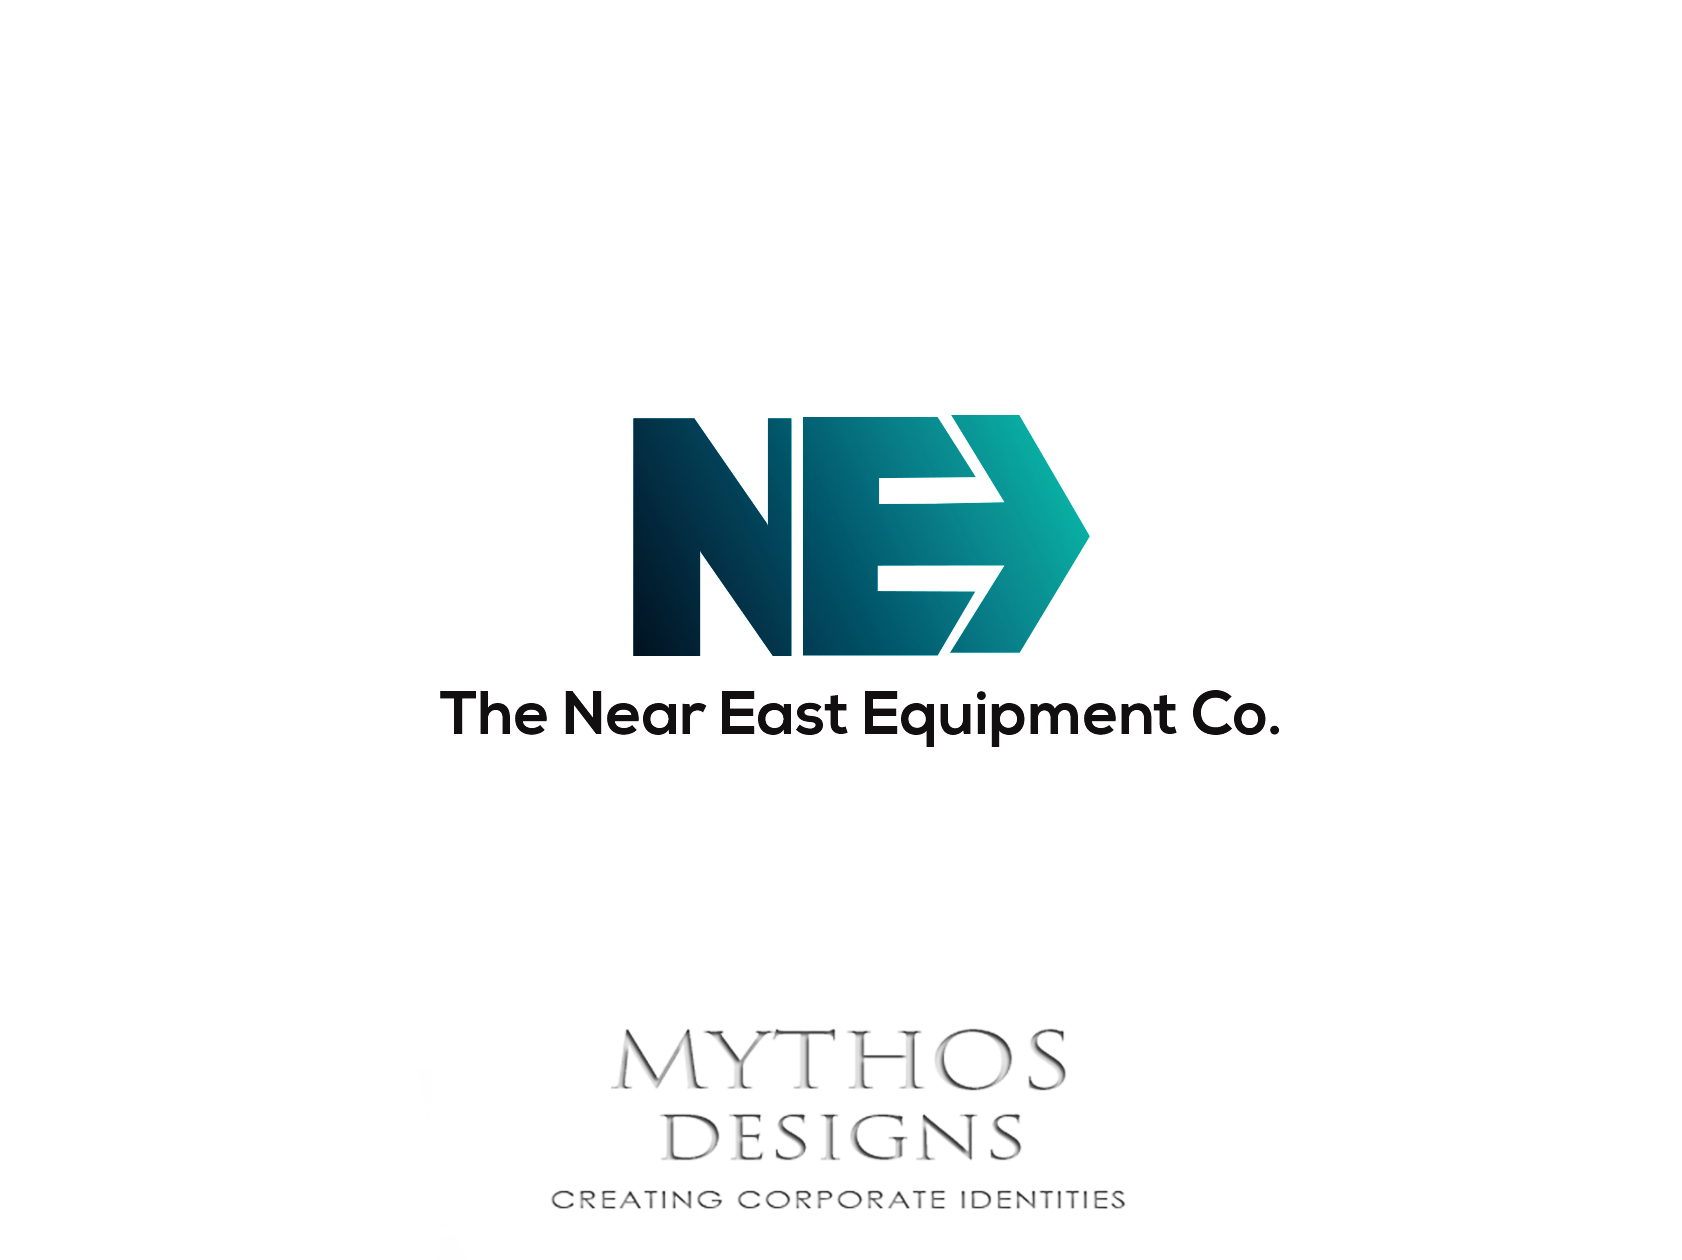 Logo Design by Mythos Designs - Entry No. 60 in the Logo Design Contest Imaginative Logo Design for The Near East Equipment Co..